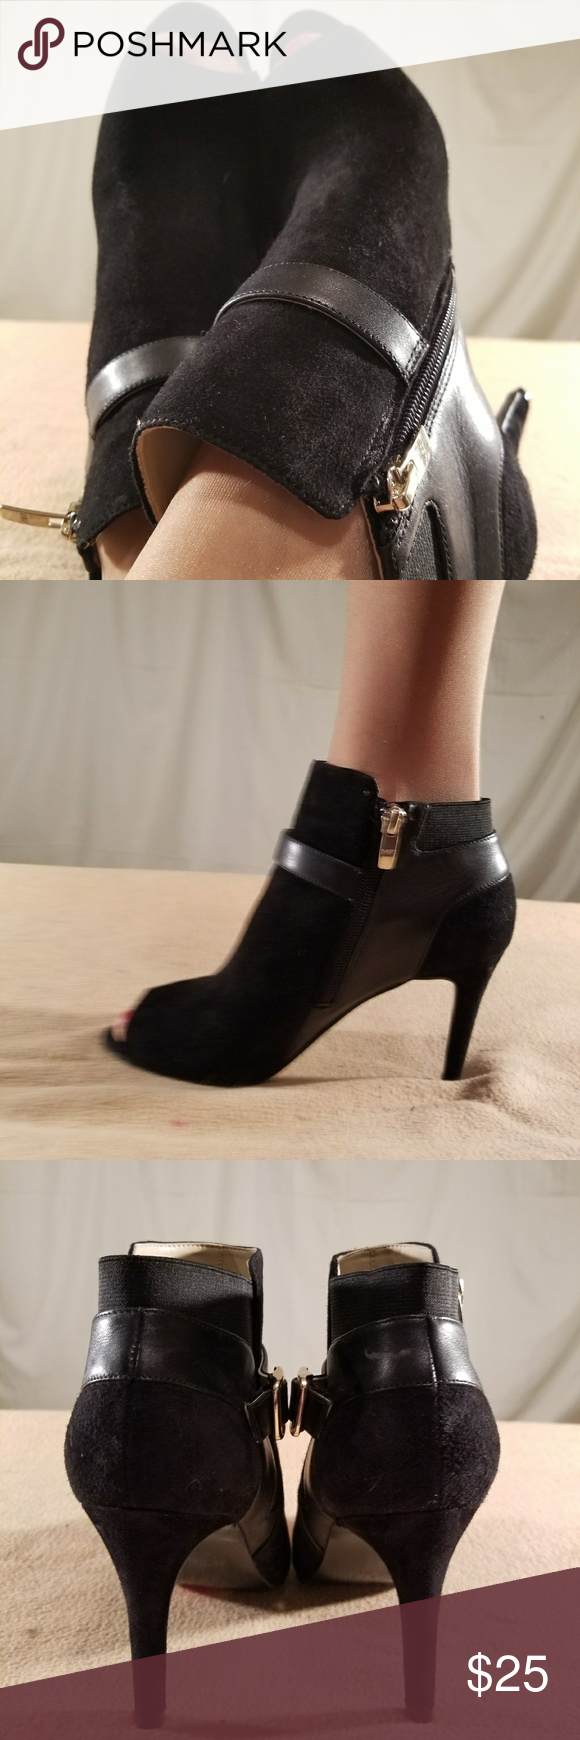 New Mark Fisher Black Suede/Leather Bootie Heels These shoes are Brand New/Never Worn and are in PERFECT CONDITION. The heel height of this shoe is 3.5 inches tall. Marc Fisher Shoes Ankle Boots & Booties